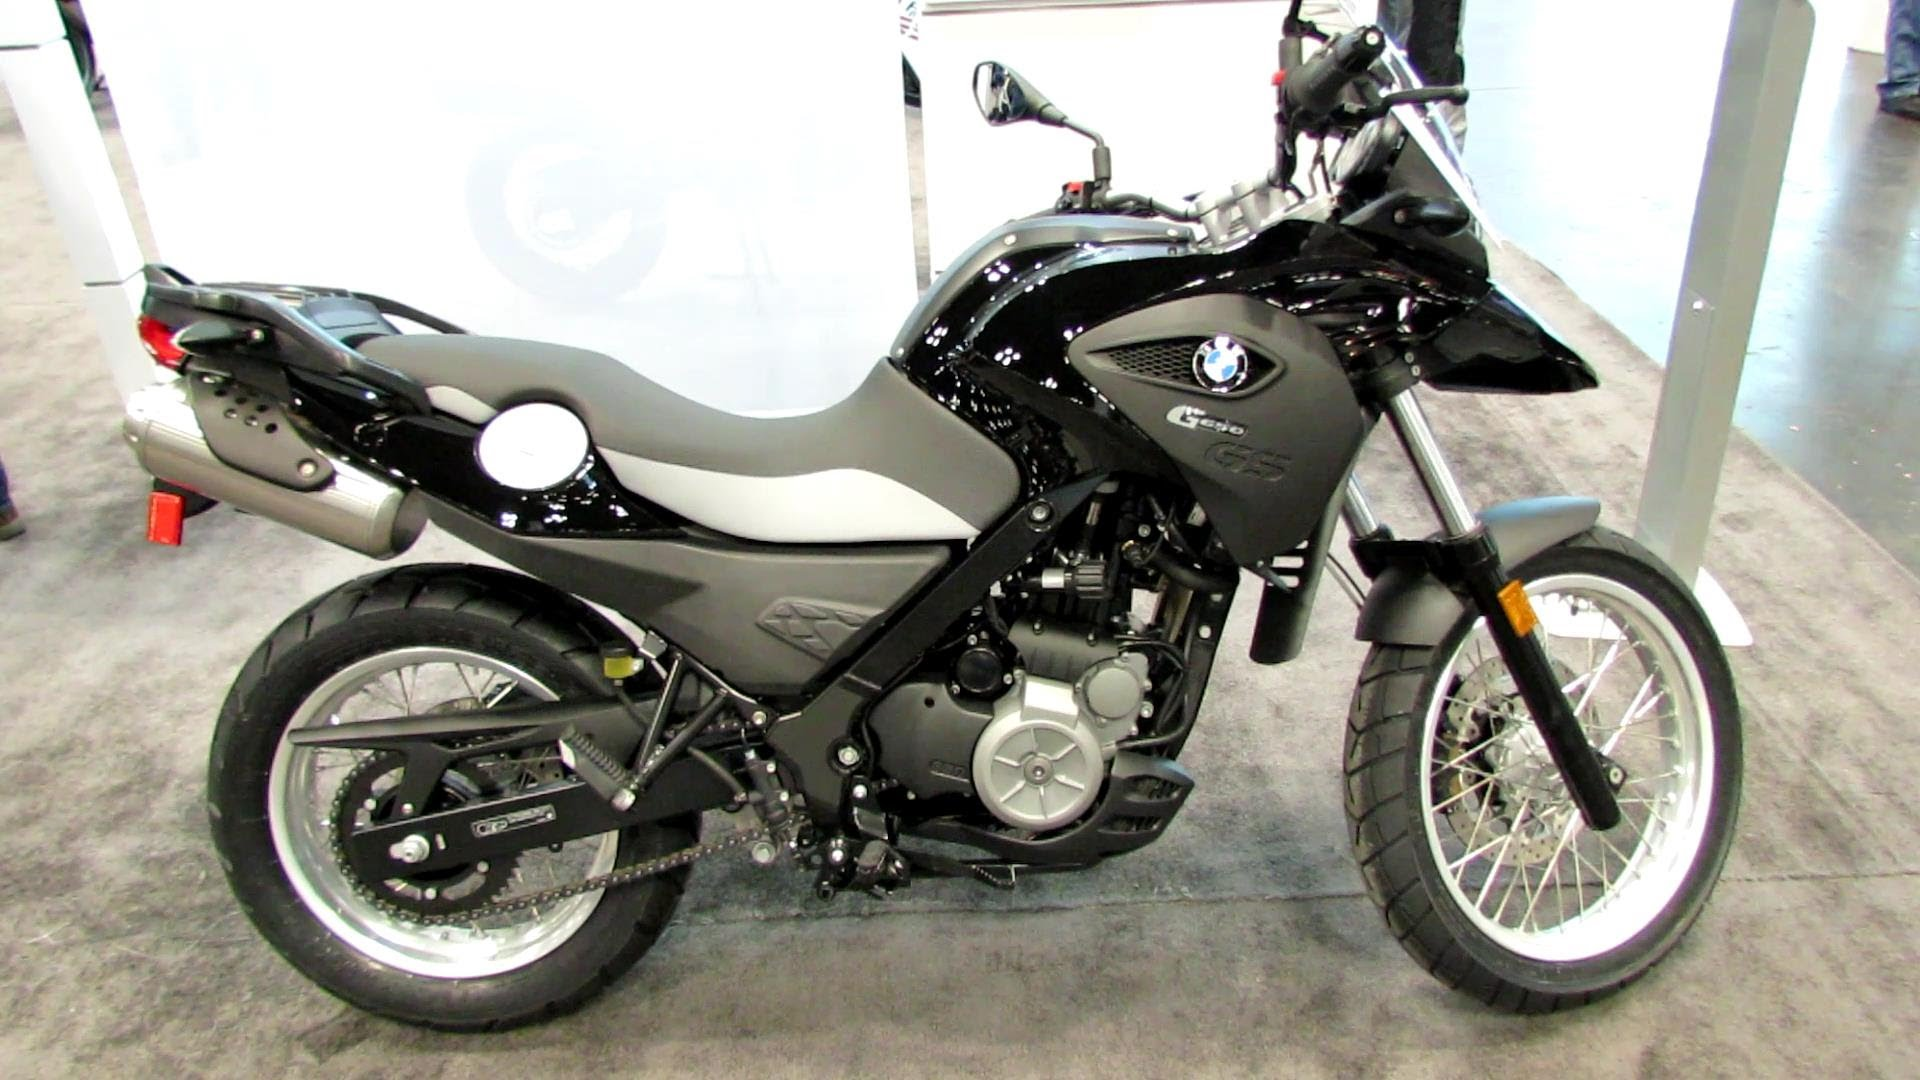 BMW G 650 GS 2011 images #8388